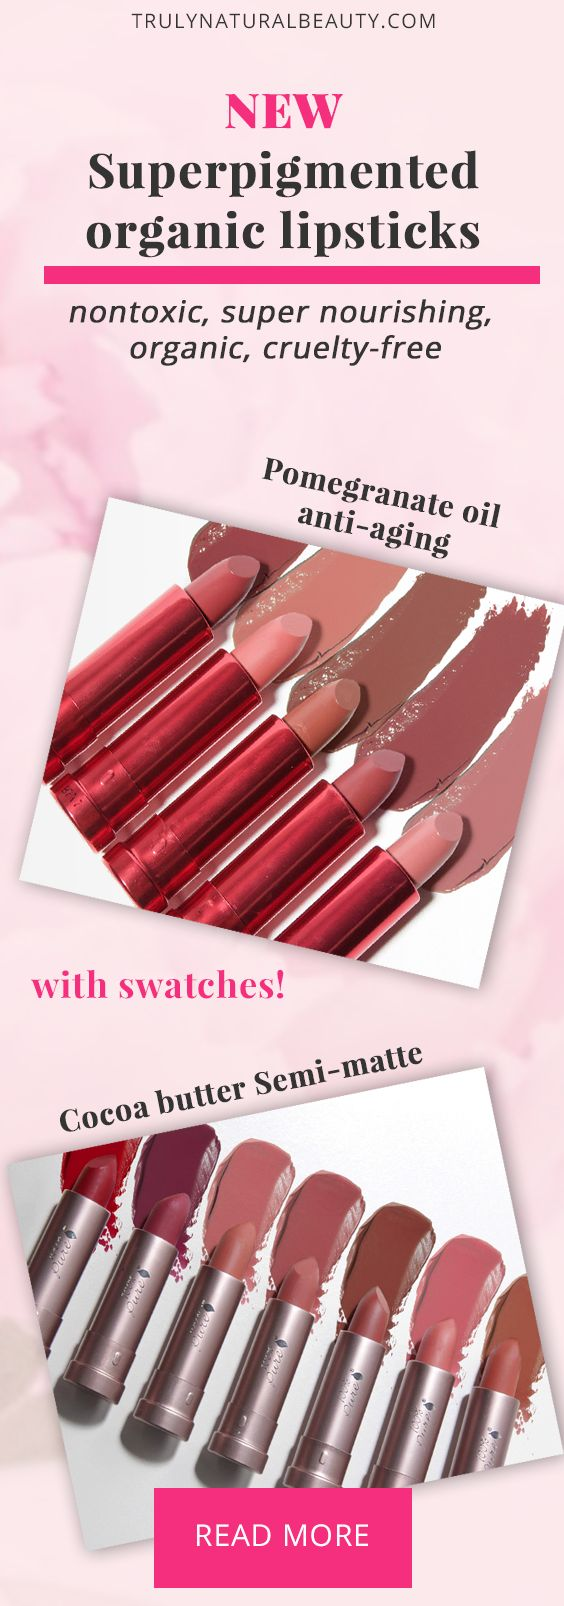 New 100% Pure lipstick shades! Semi-matte lipsticks and pomegranate oil anti-aging lipsticks. Beautiful nude shades. Organic lipstick, natural lipstick, vegan lipstick, crueltyfree lipstick, matte lipstick, best organic natural products, skin care tips for acne, best way to care for your skin, healthy makeup, natural skin care tips, natural makeup, clean beauty, organic beauty cosmetics, natural beauty cosmetics, nontoxic beauty, nontoxic cosmetics, 100% Pure lipstick swatches